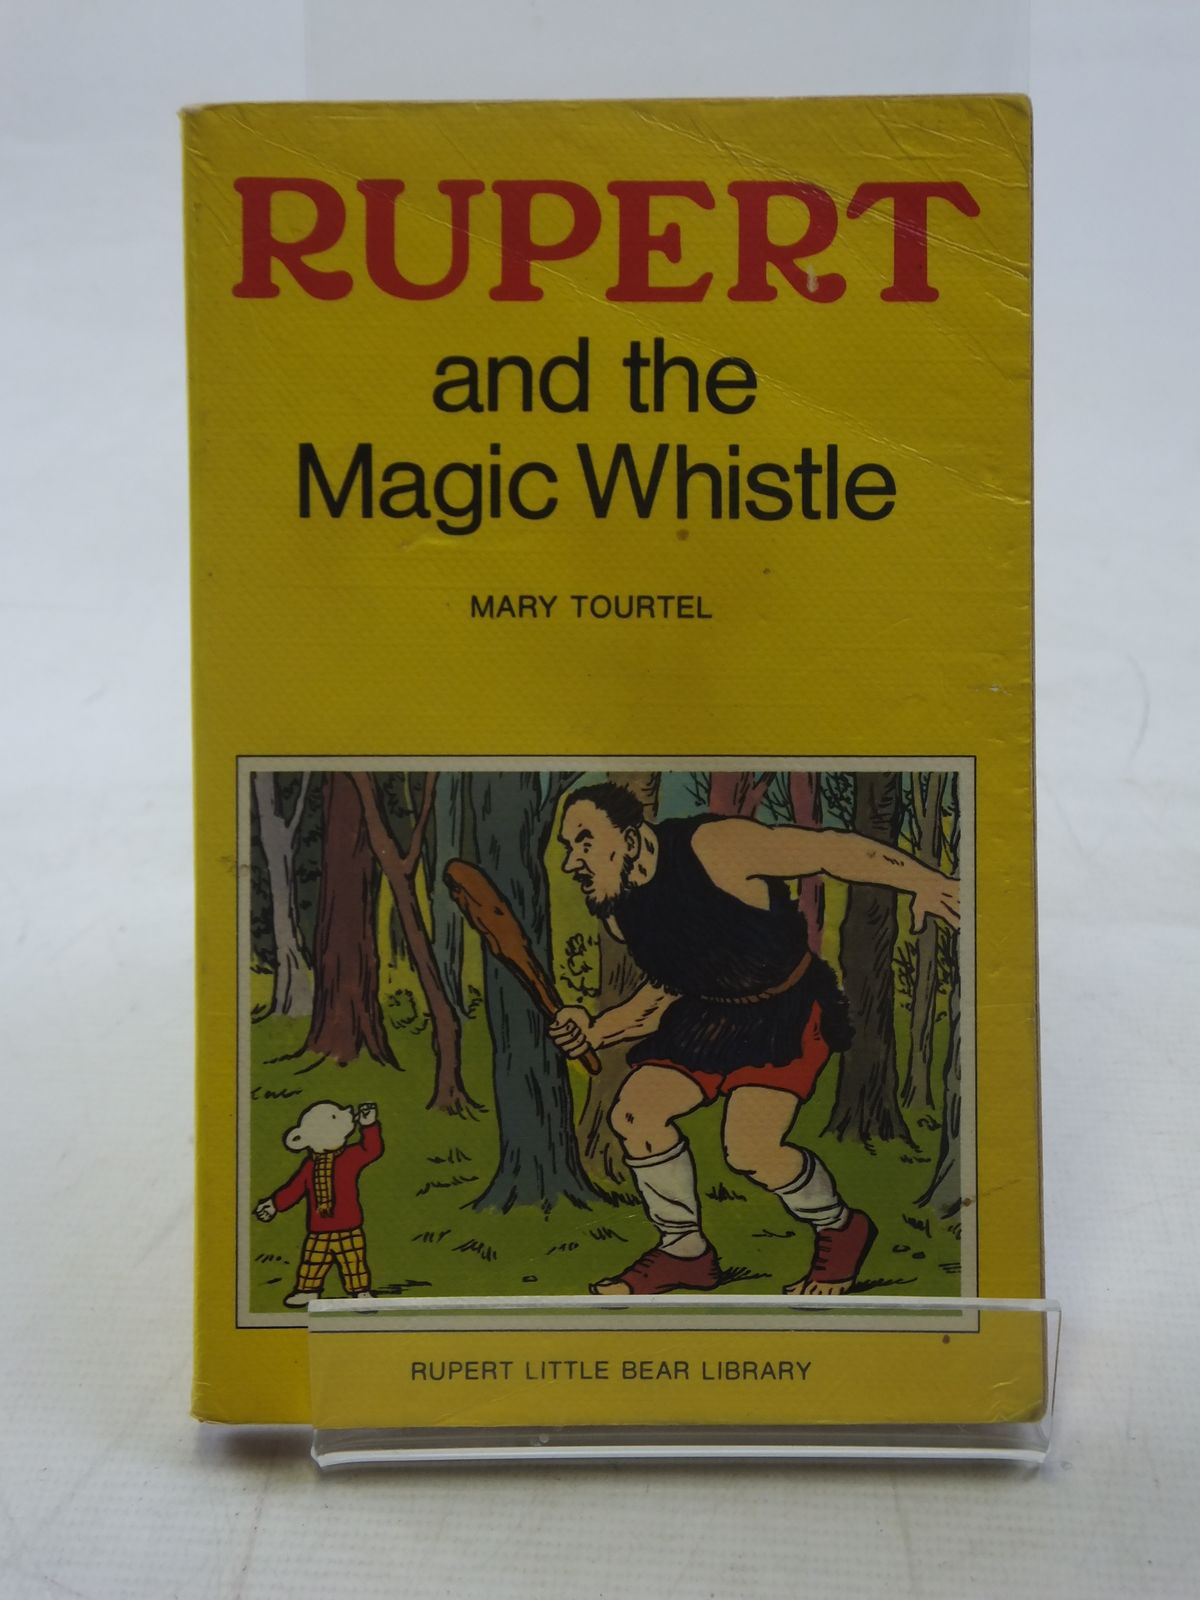 Photo of RUPERT AND THE MAGIC WHISTLE - RUPERT LITTLE BEAR LIBRARY No. 9 (WOOLWORTH)- Stock Number: 2117147